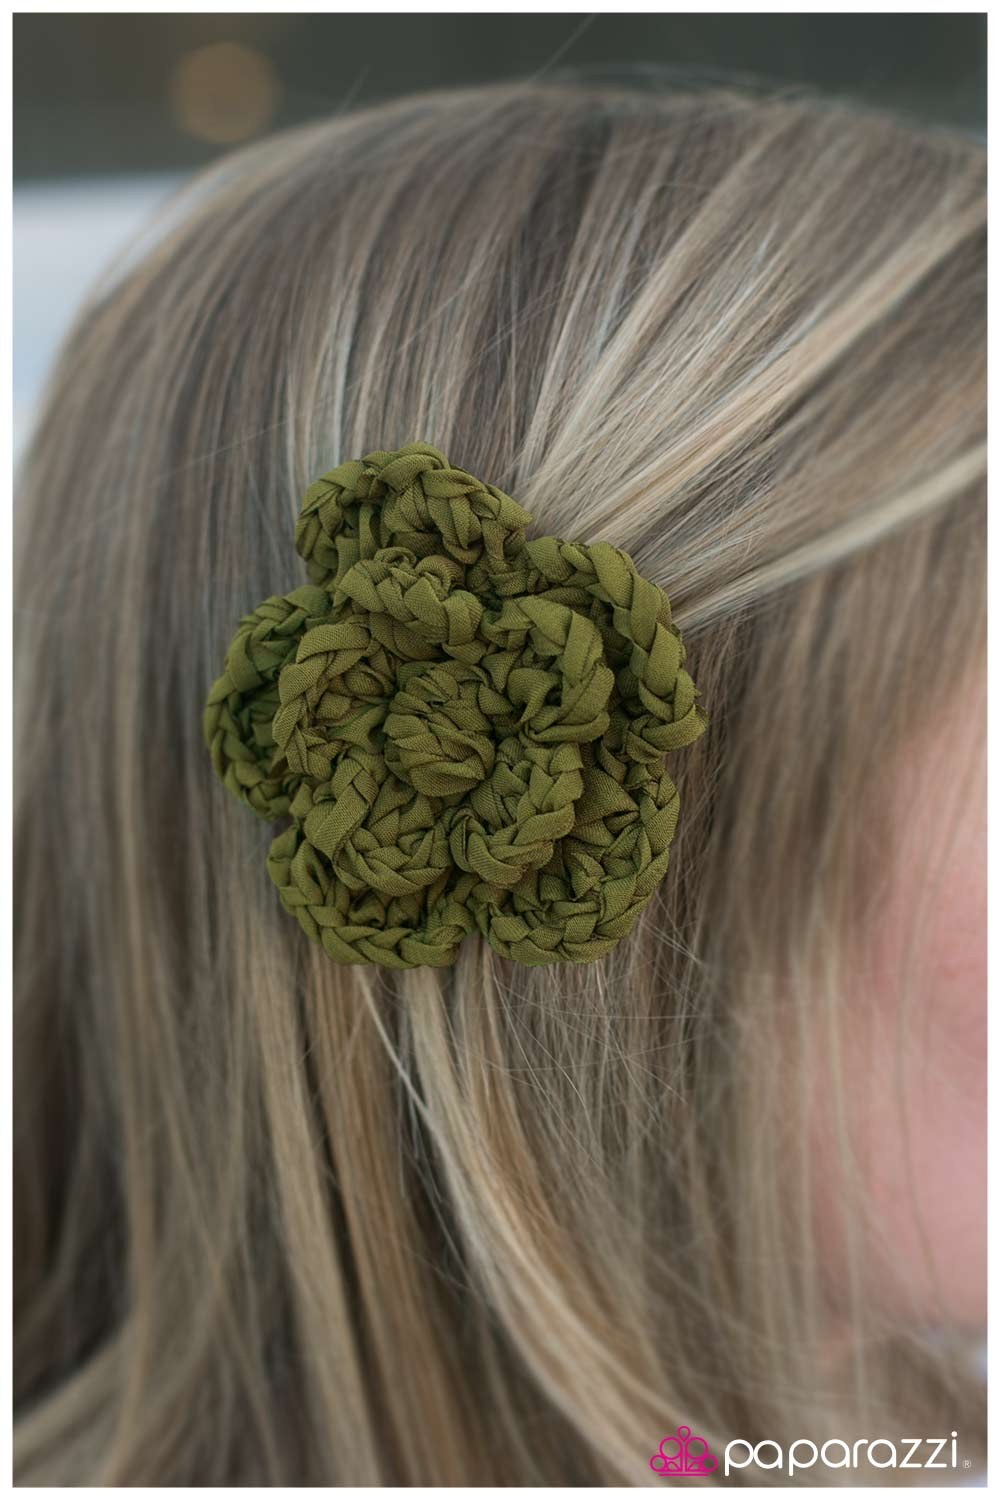 five-dollar-jewelry-braided-bouquet-green-hair clip-paparazzi-accessories